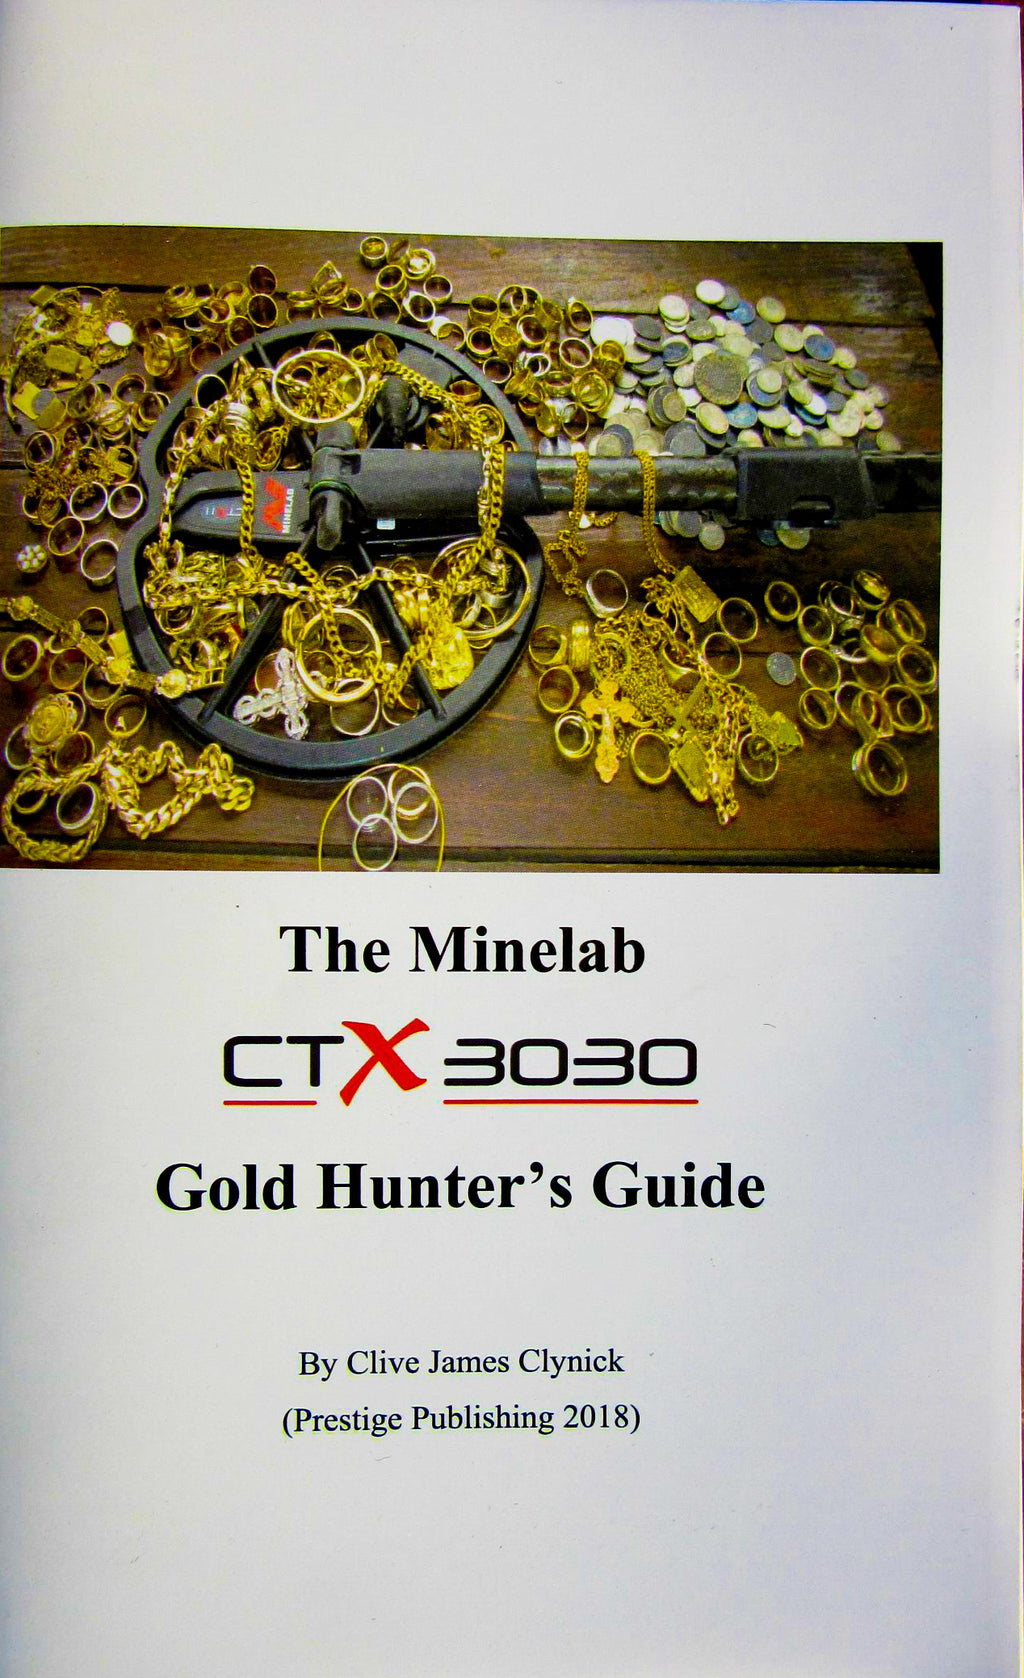 The Minelab CTX 3030 Gold Hunter's Guide By Clive James Clynick